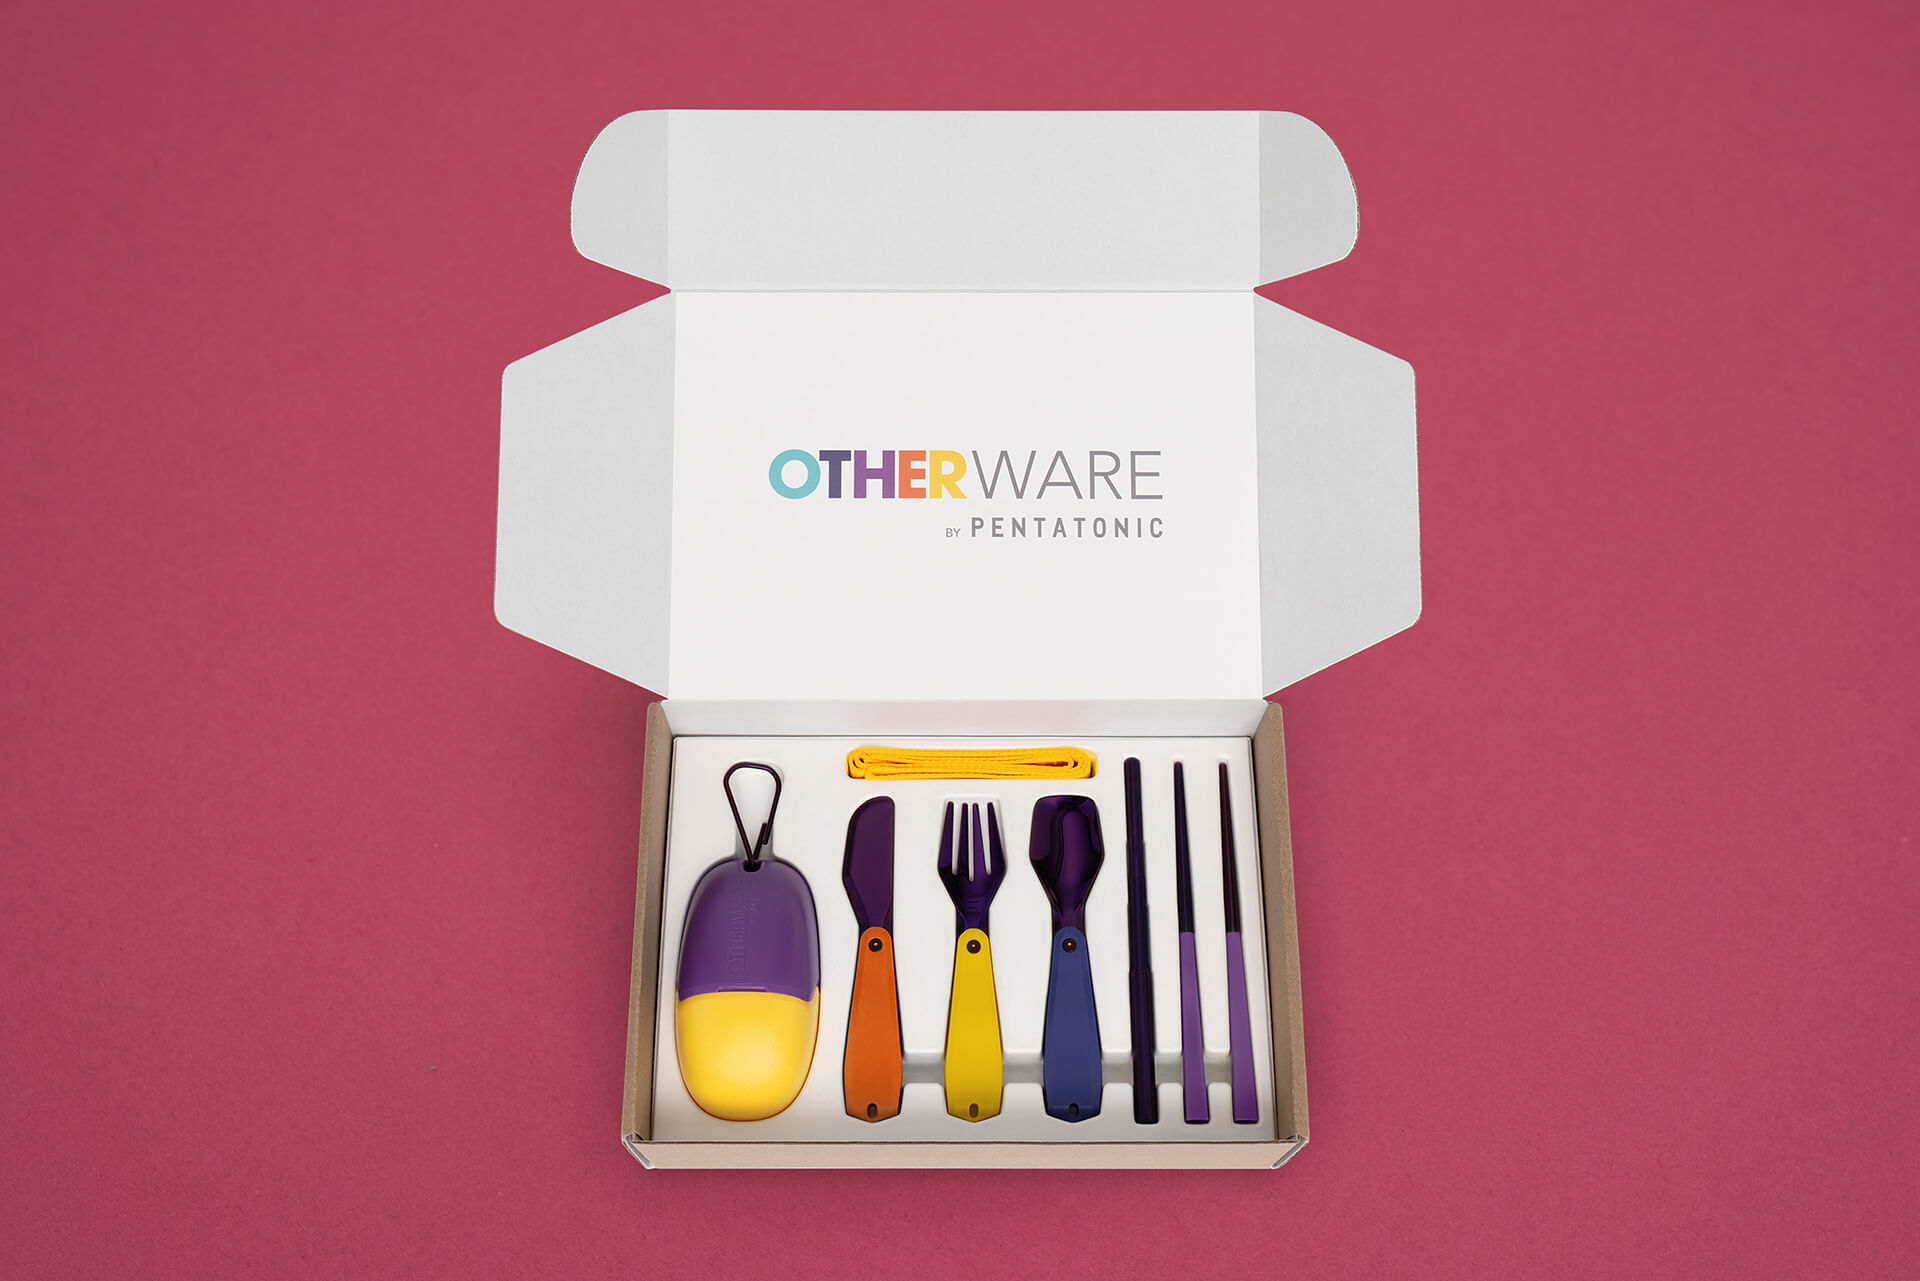 The Pebble from Otherware mobile cutlery set | The Pebble by Otherware created by Pentatonic in collaboration with i am OTHER | STIRworld